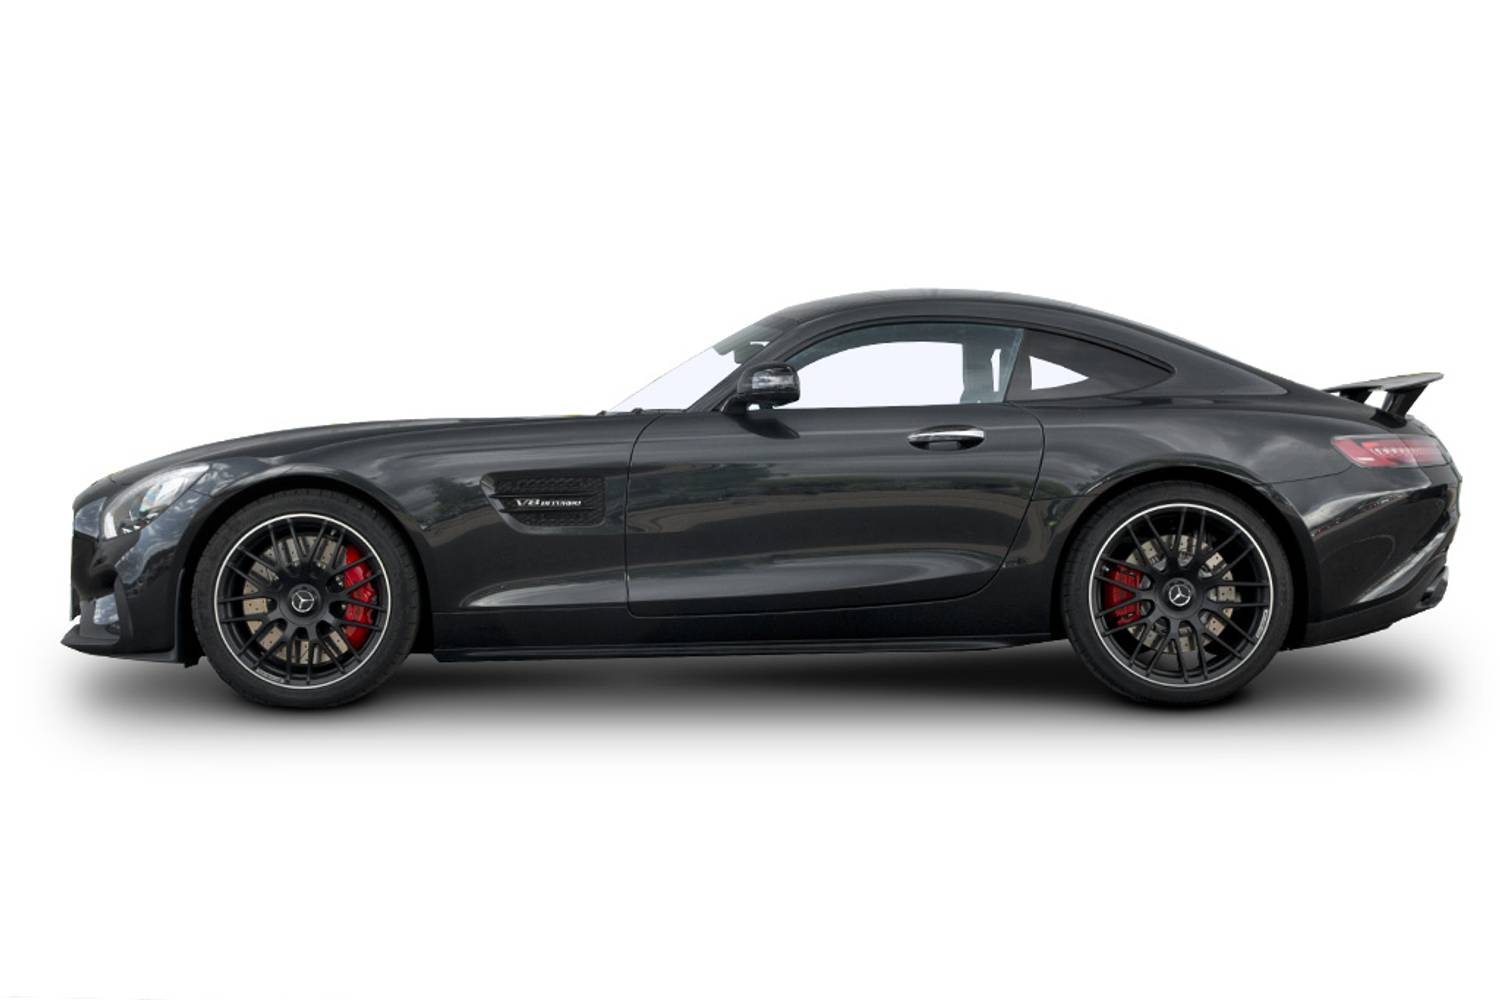 new mercedes benz amg gt coupe gt r premium 2 door auto